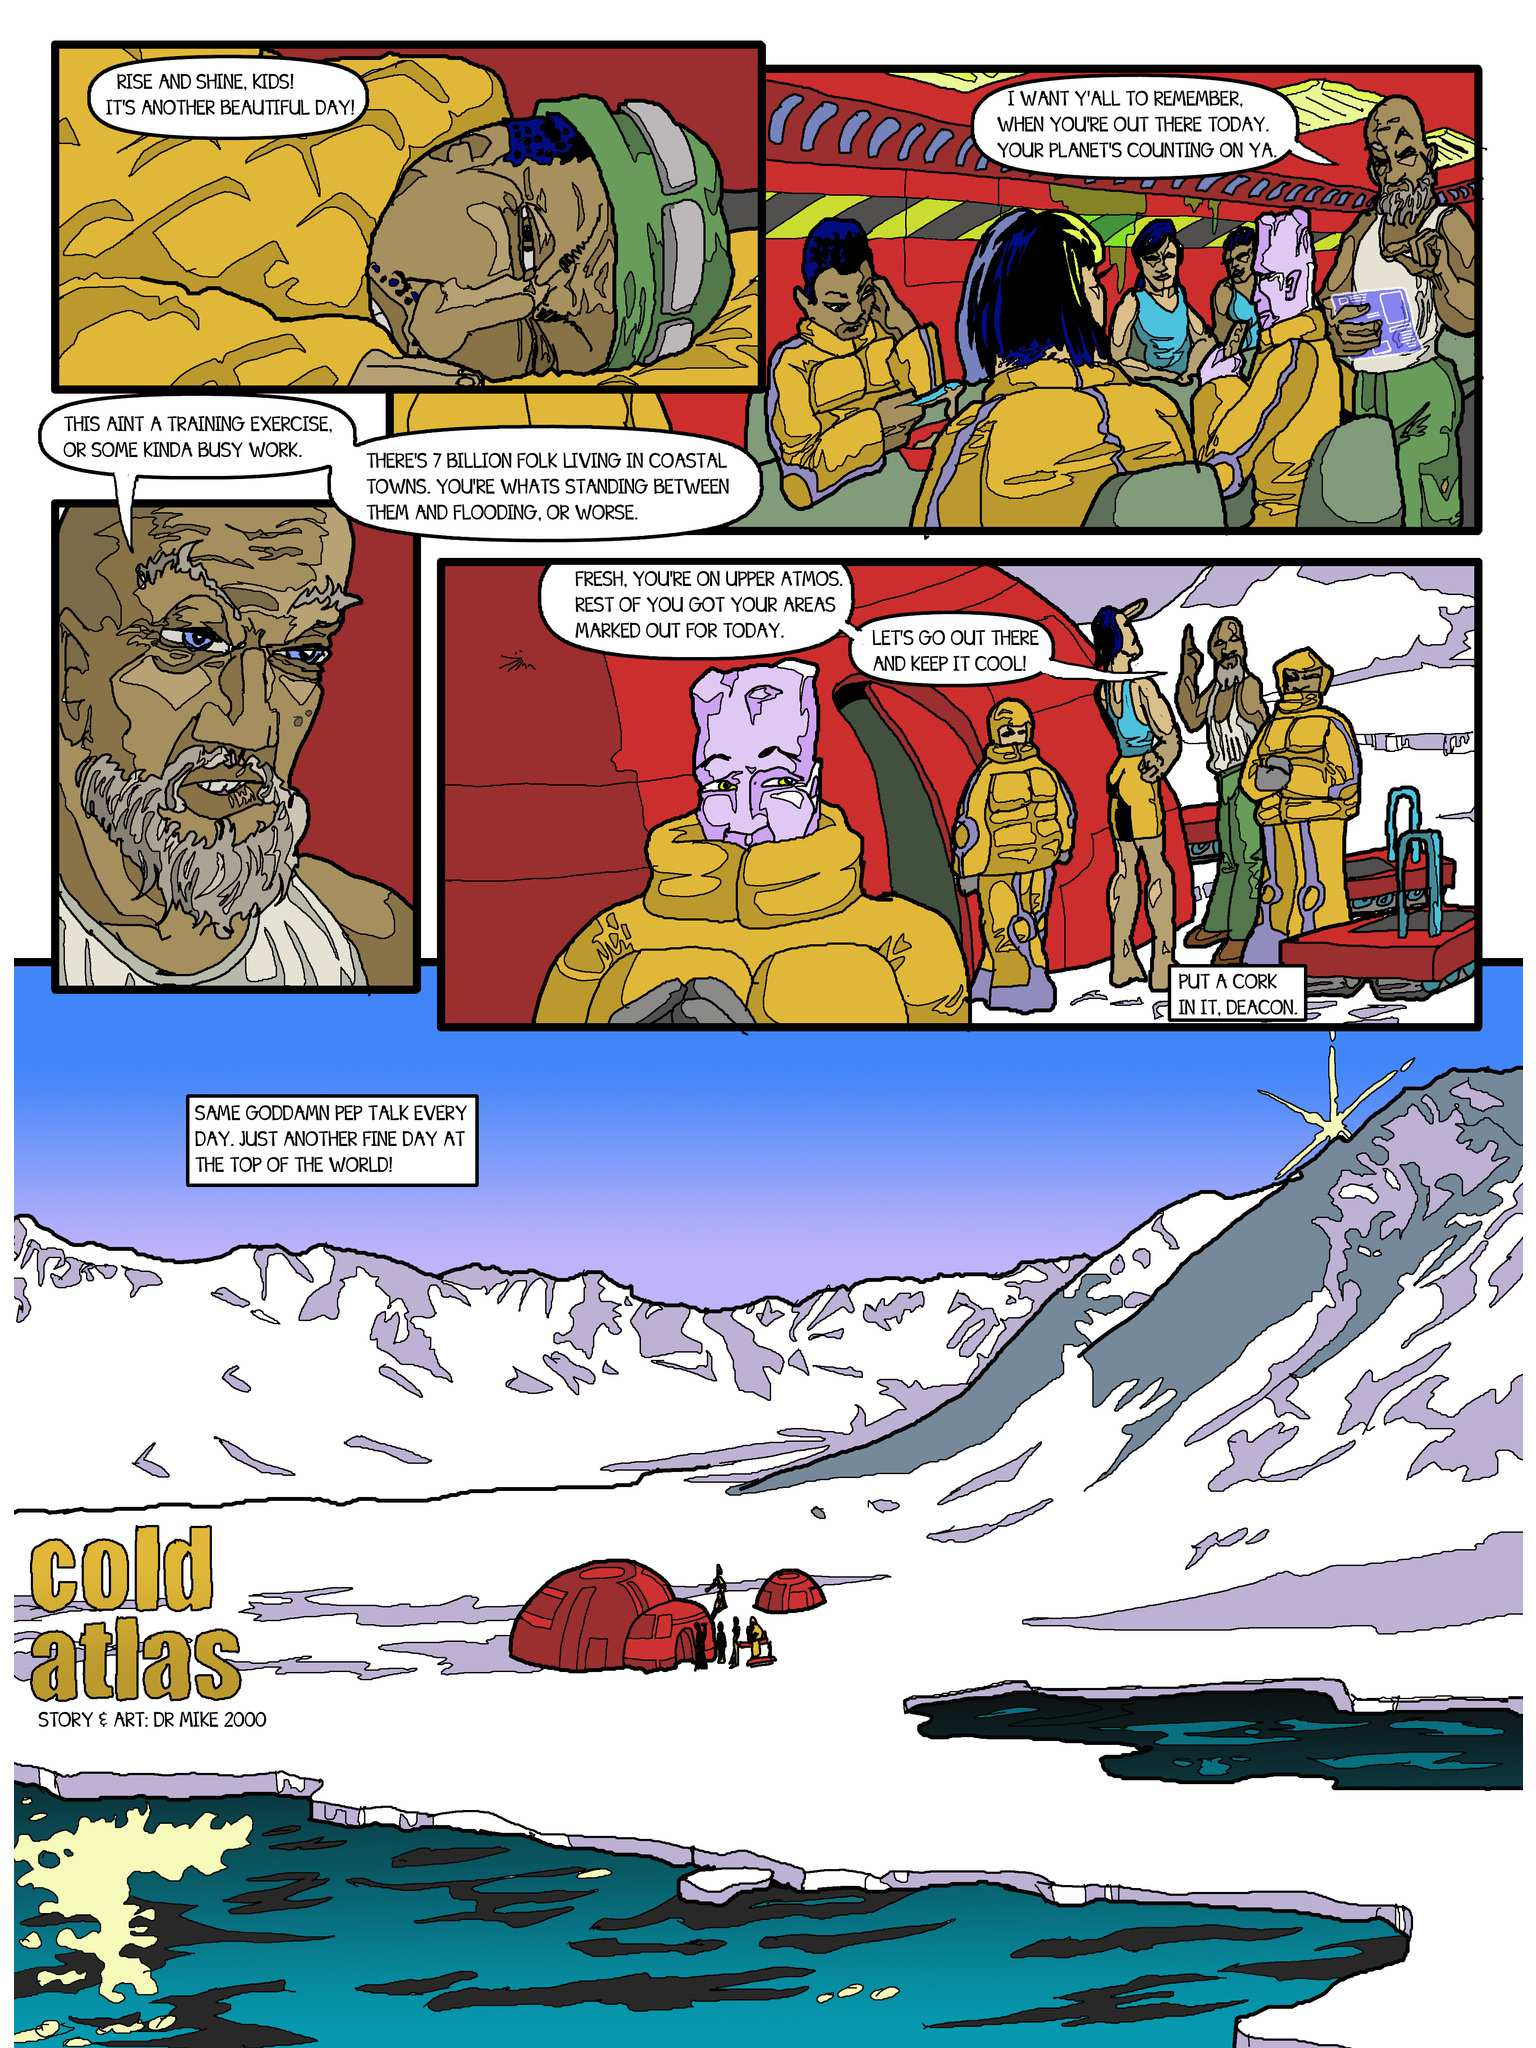 Panelalia 01 - Cold Atlas by Mike Cooper